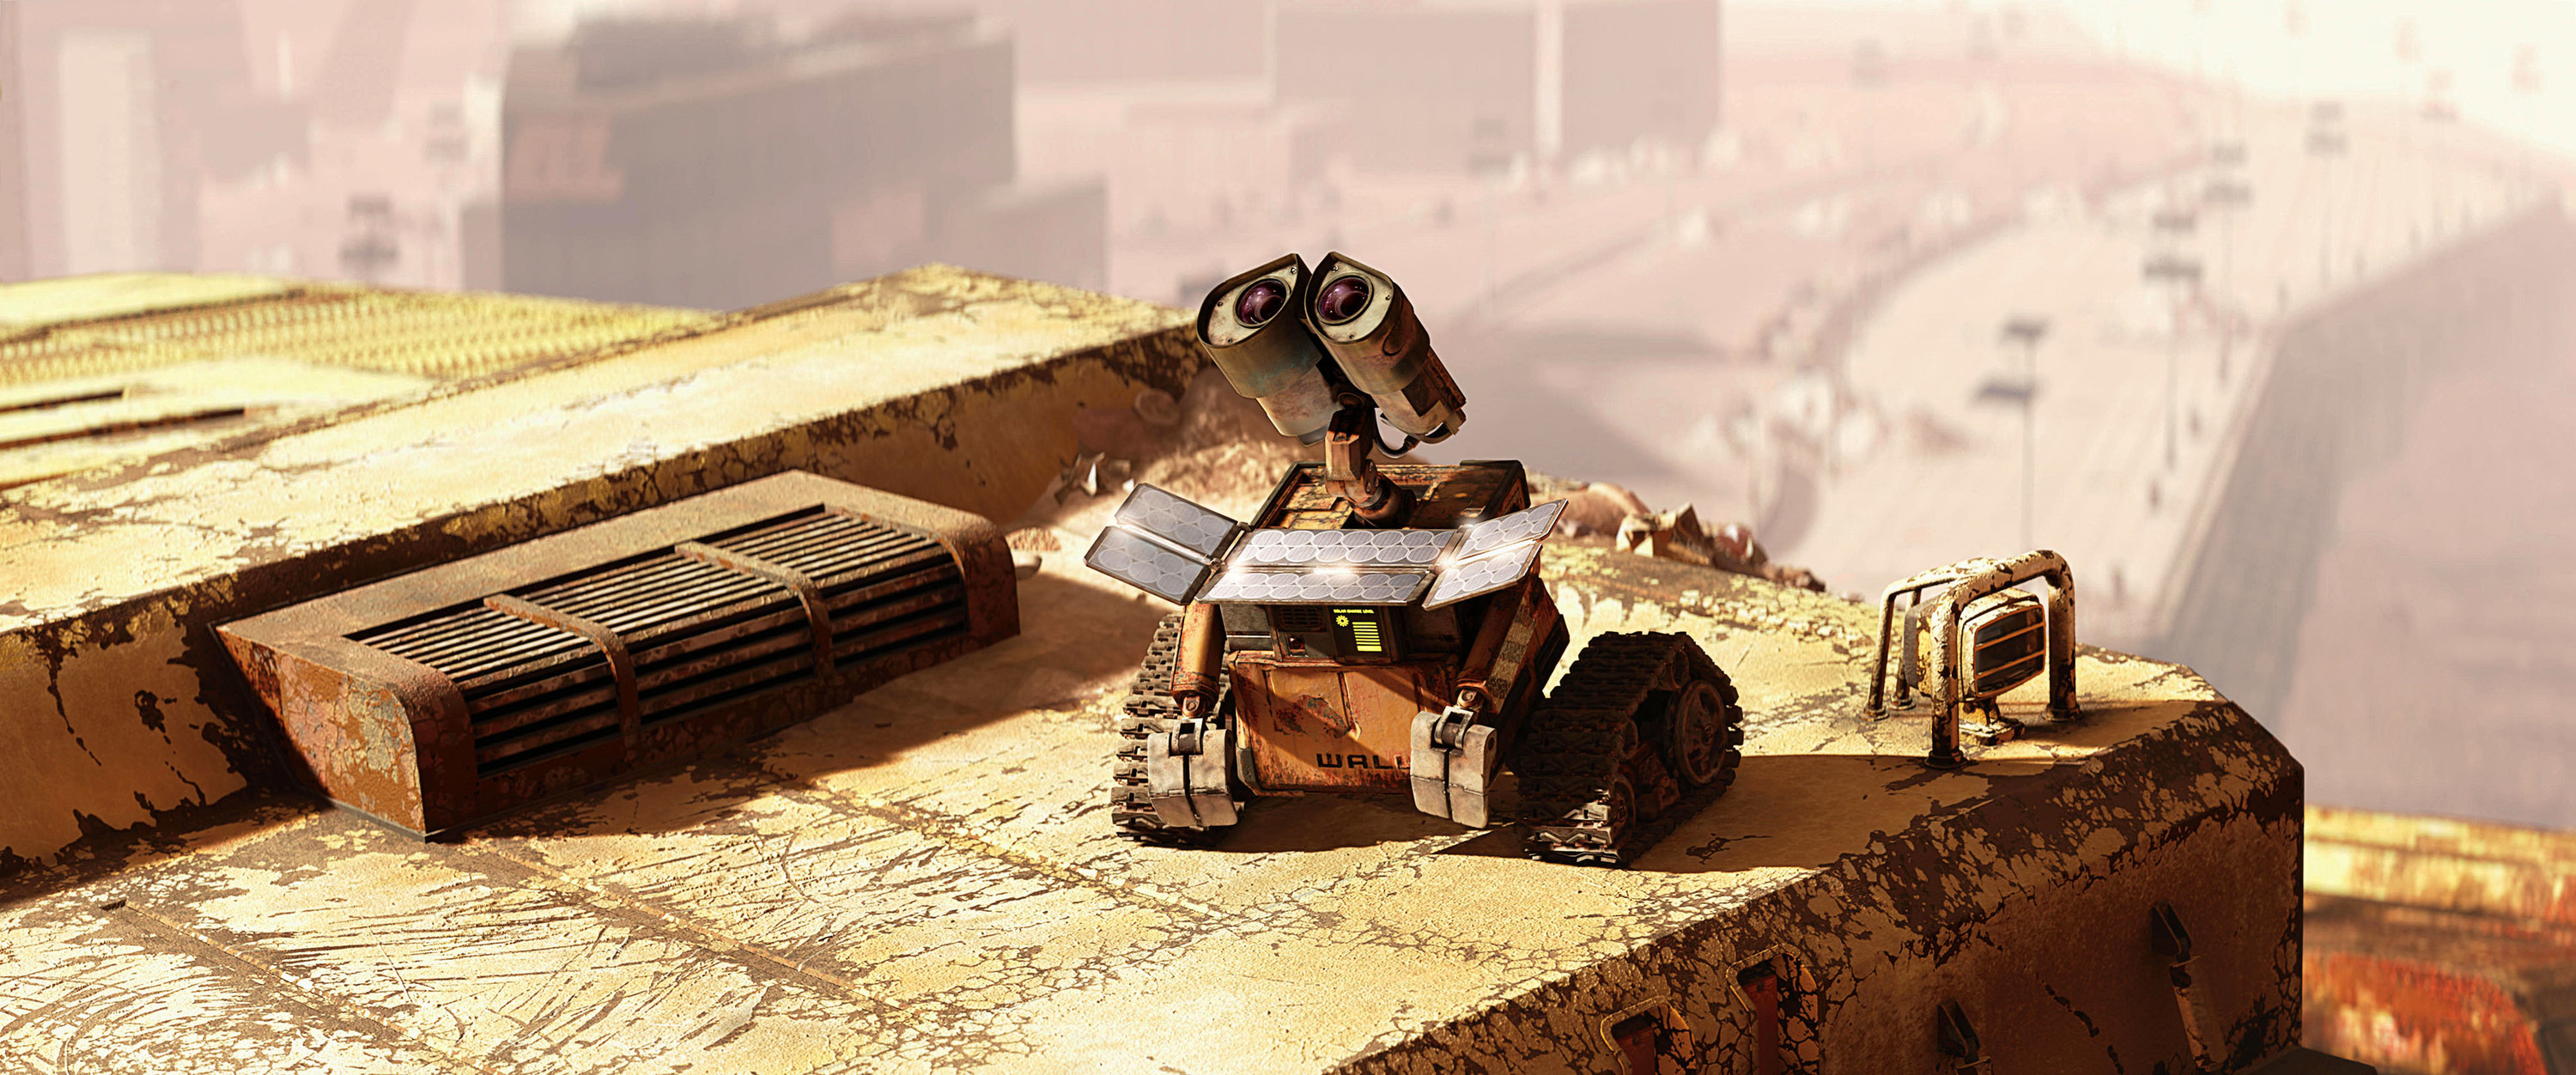 Wall-E looking up into the sky